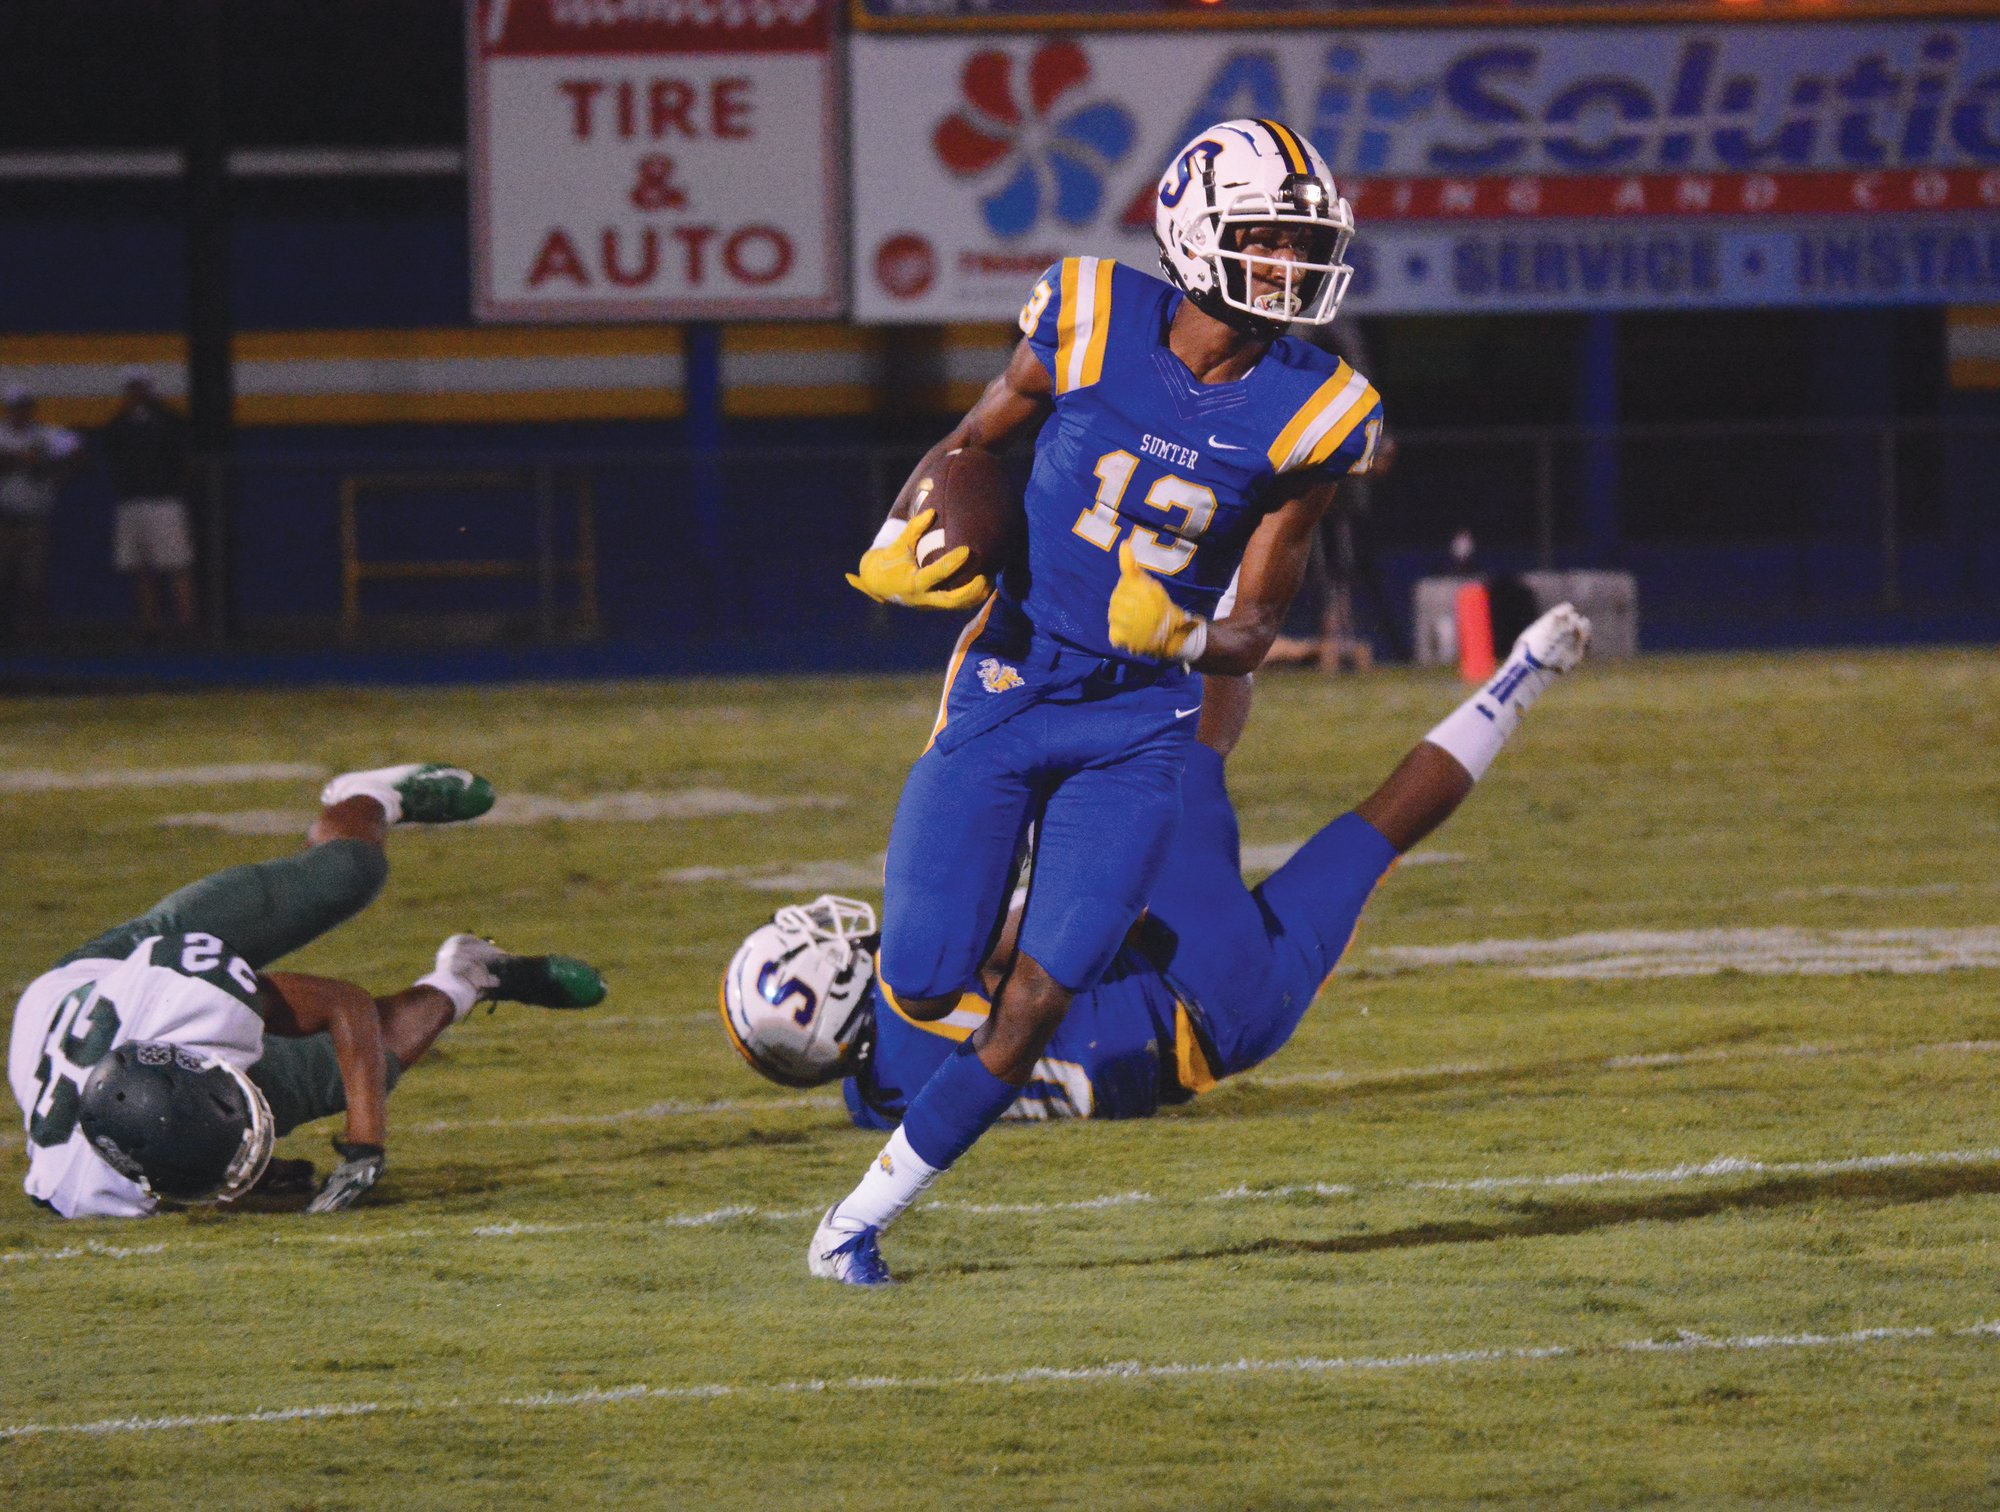 TIM LEIBLE / THE SUMTER ITEM  Sumter's Tylee Craft (13) turns up the field on a punt return in the Gamecocks' 61-0 victory over Lakewood on Friday at Memorial Stadium's Freddie Solomon Field.